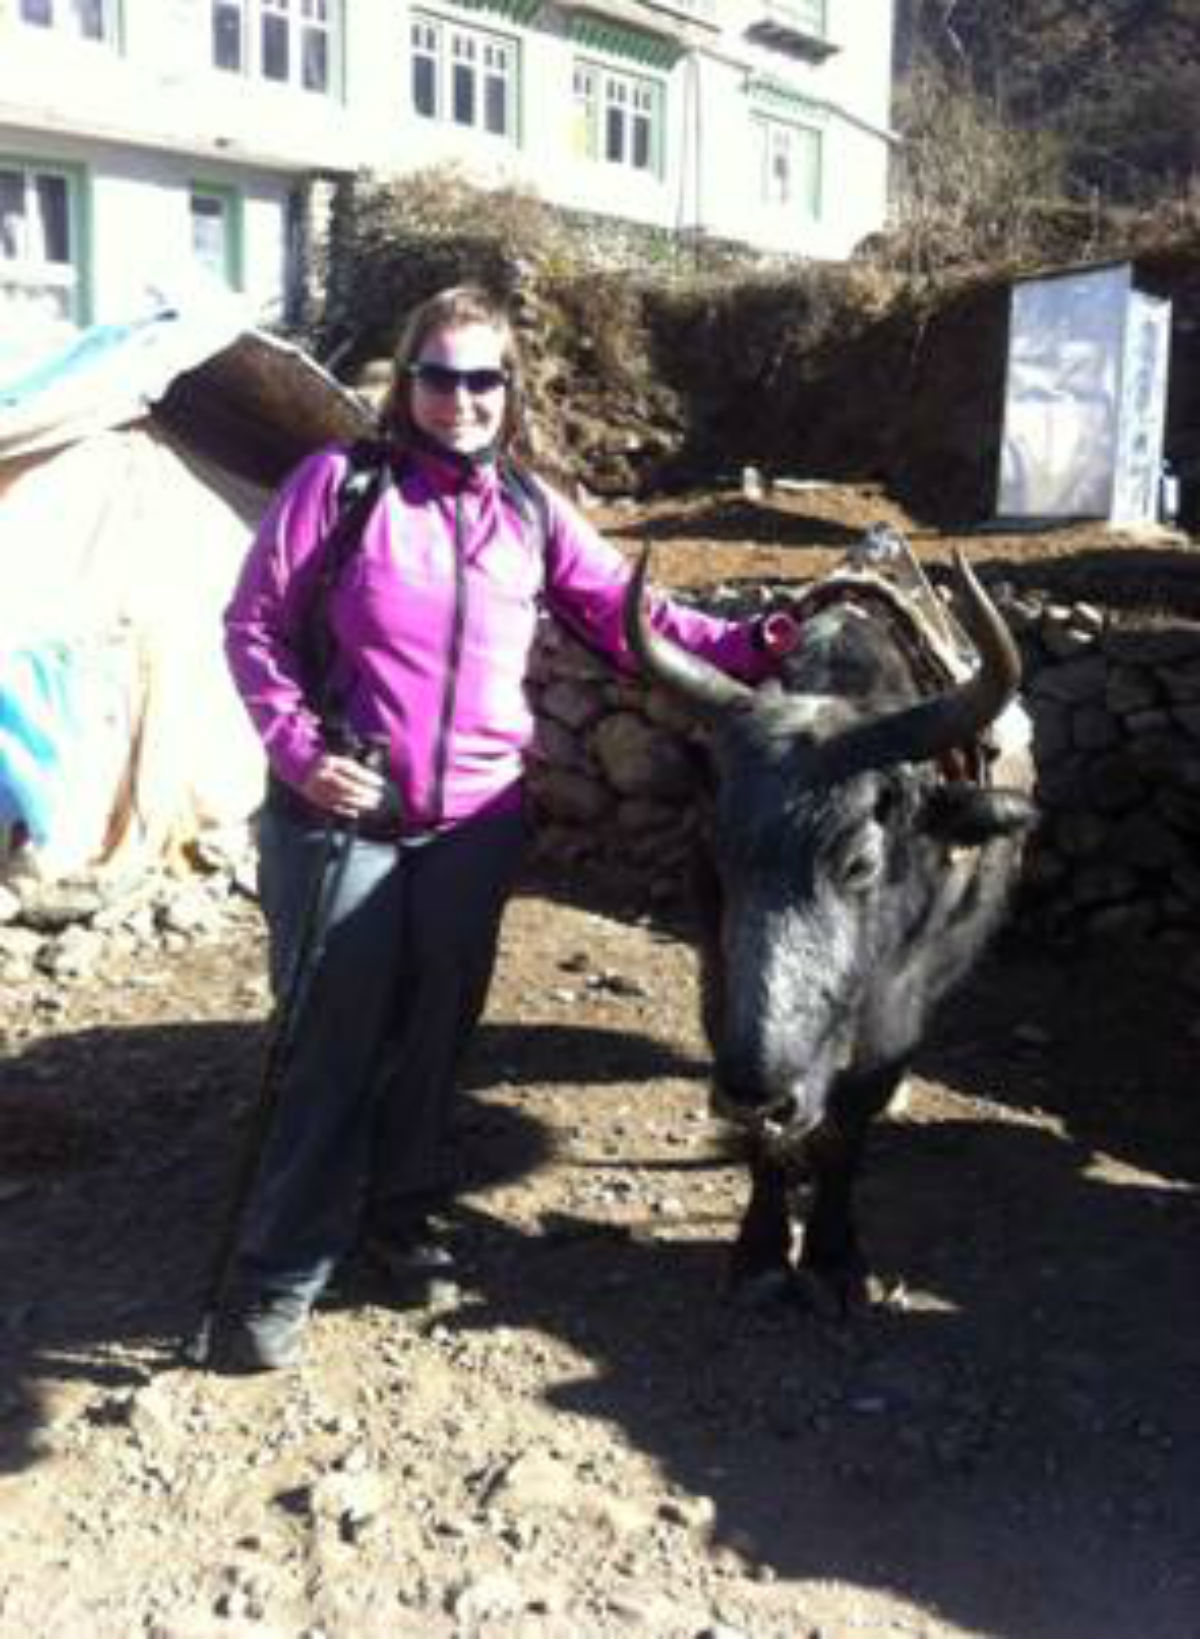 Annelies O'Nions, who has completed a successful trip to Everest Base Camp